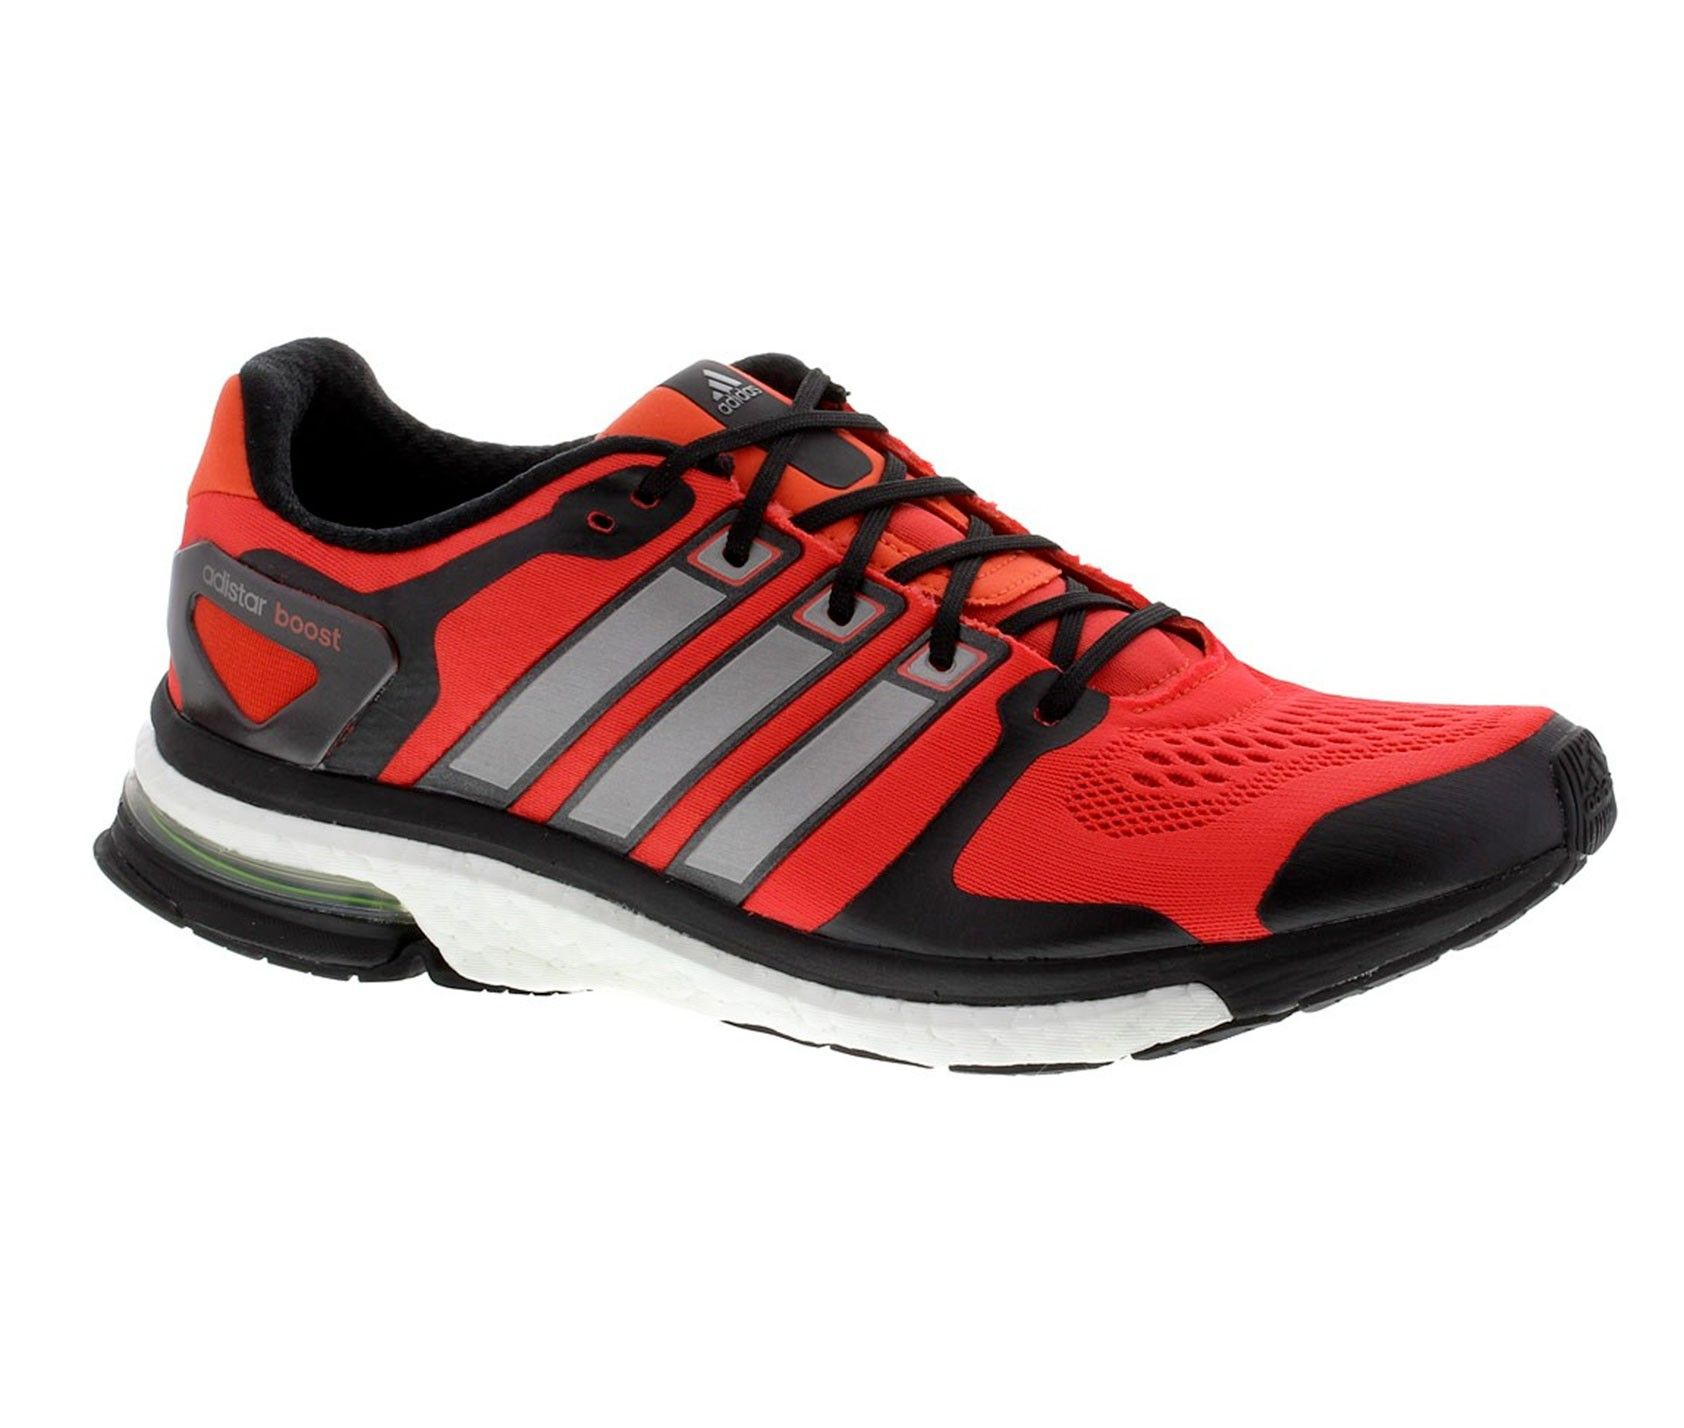 in stock new arrivals best price ADIDAS ADISTAR BOOST ESM ROJO/NEGRO | Men Sport Clothes ...